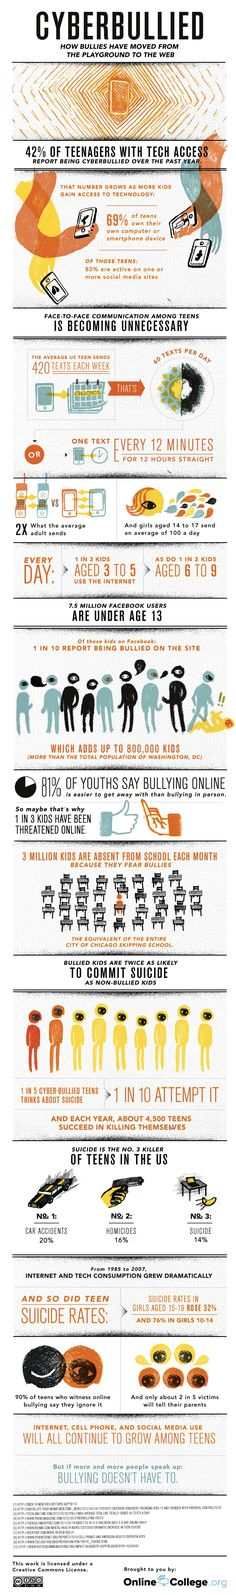 Cyberbullying : Scourge of the Internet